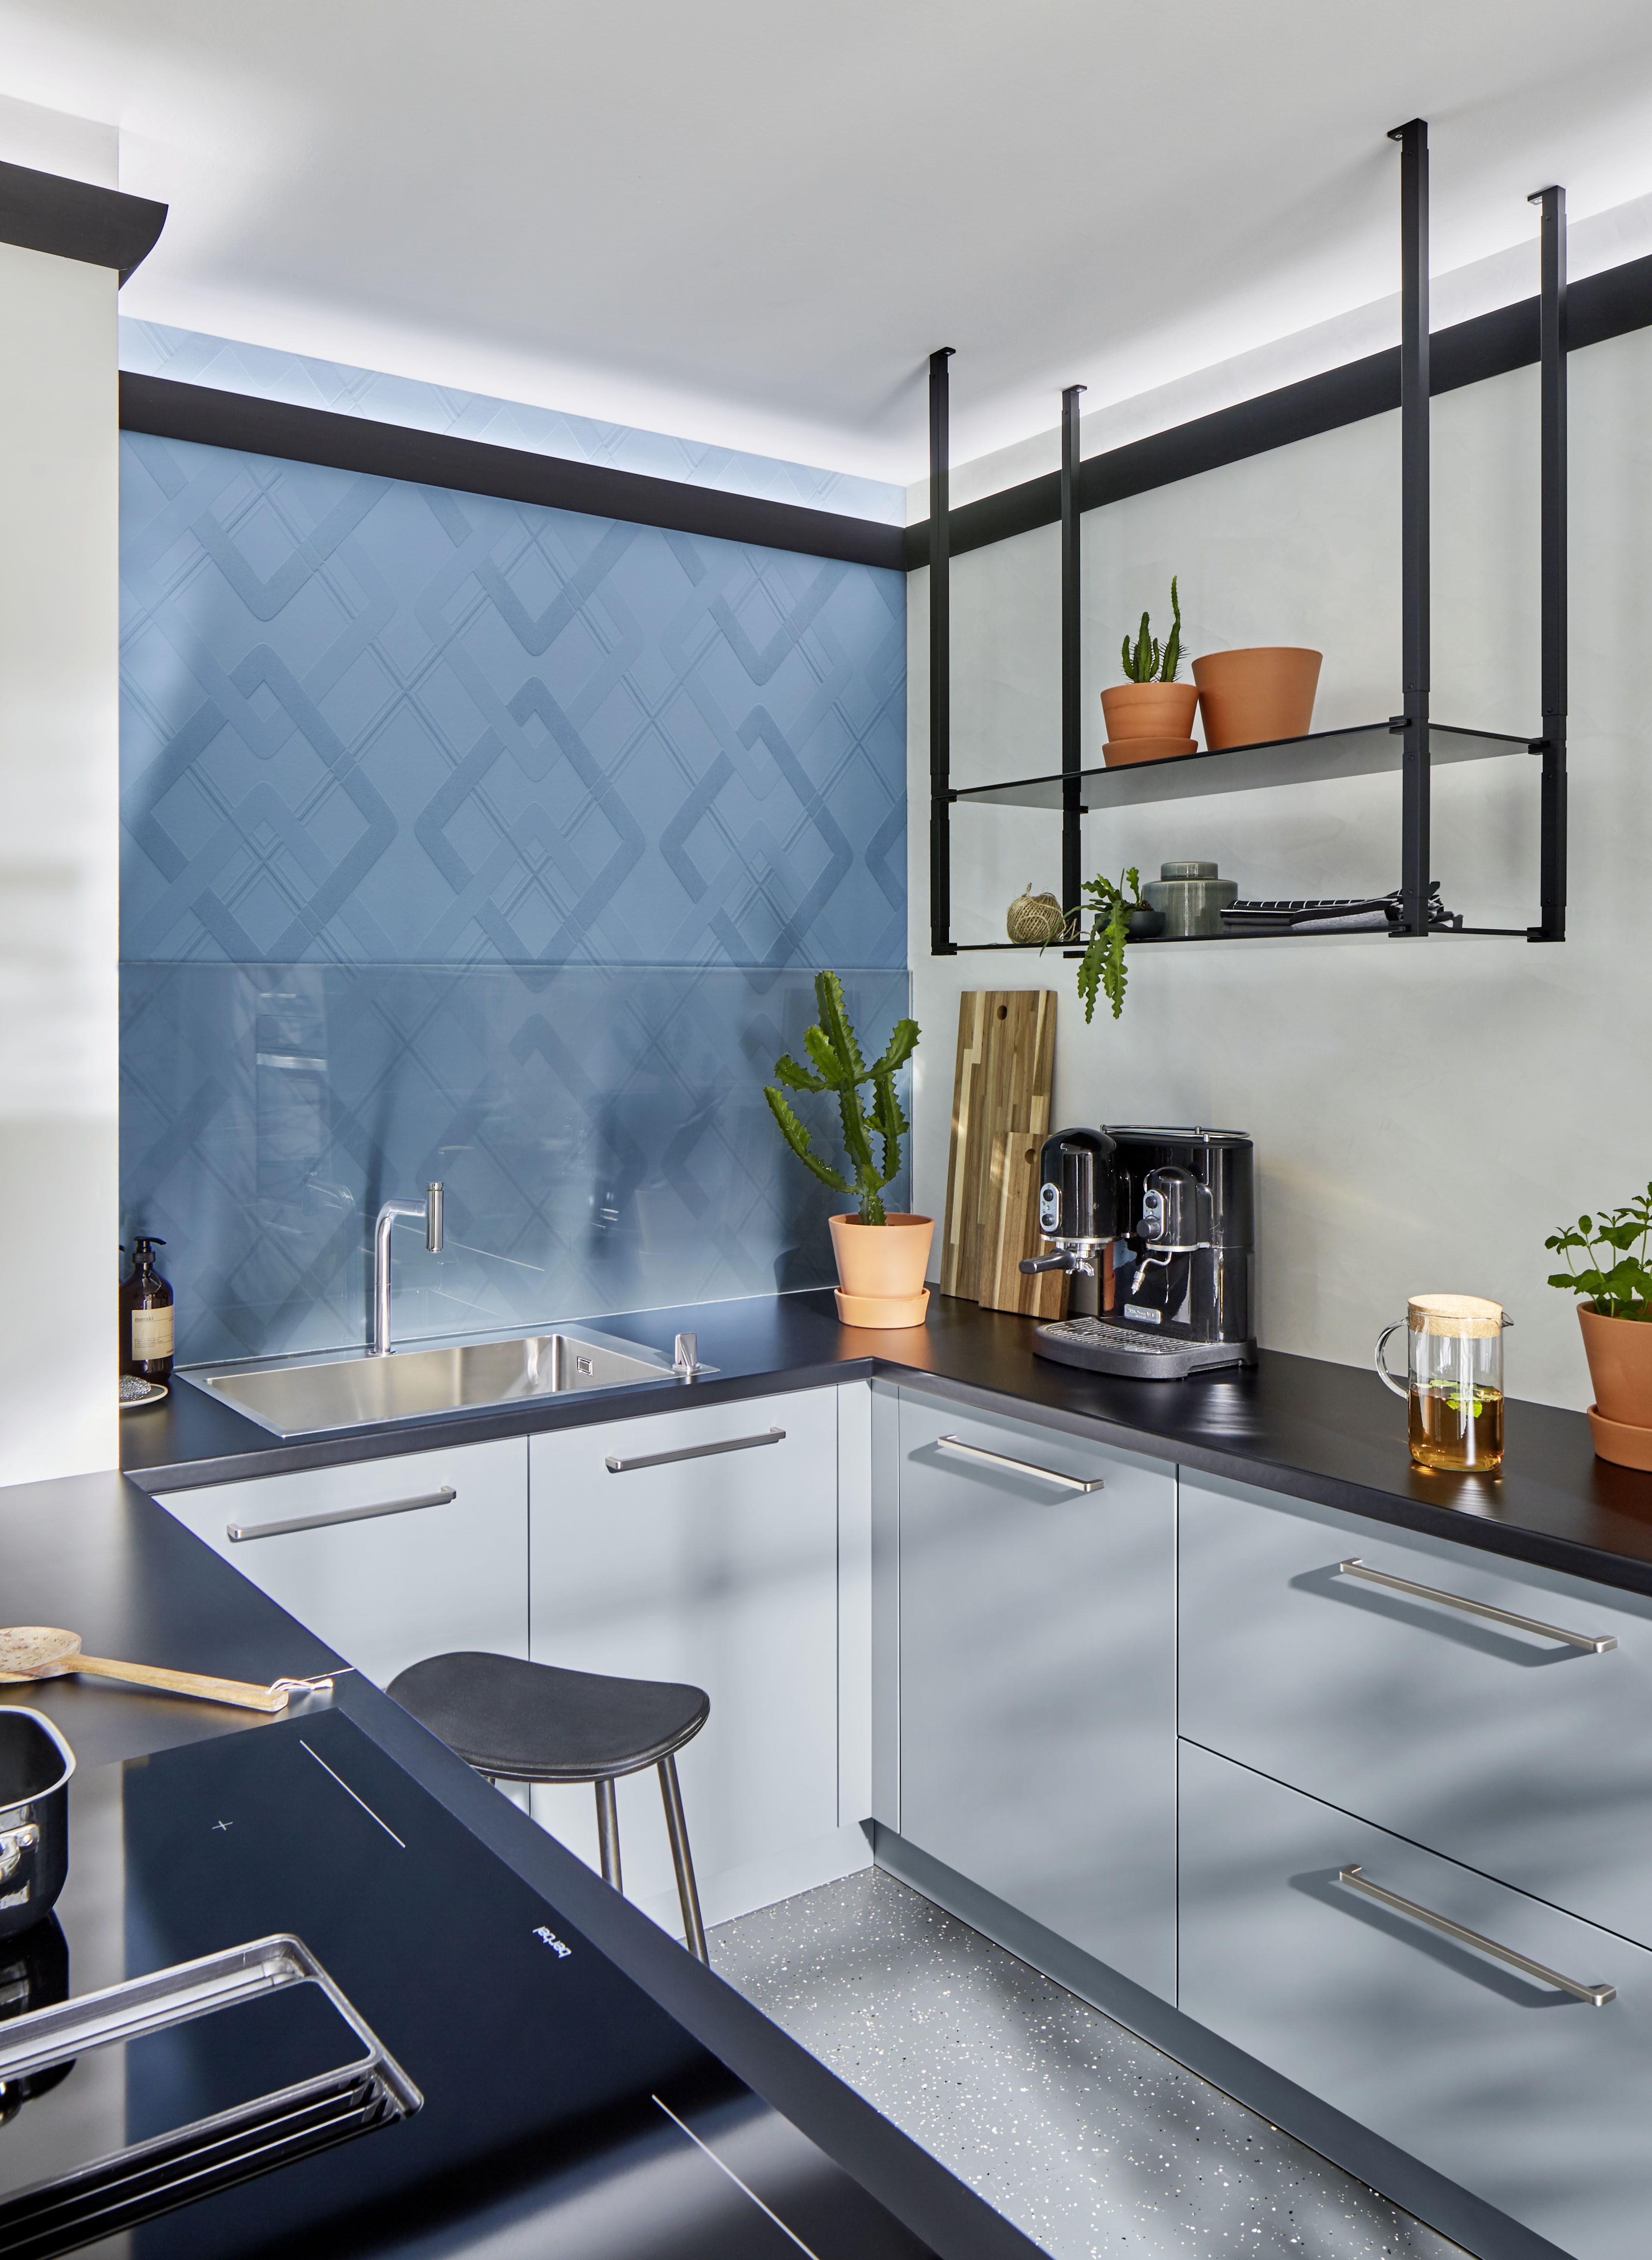 Small kitchen design with maximum style: Explore the innovative and ...